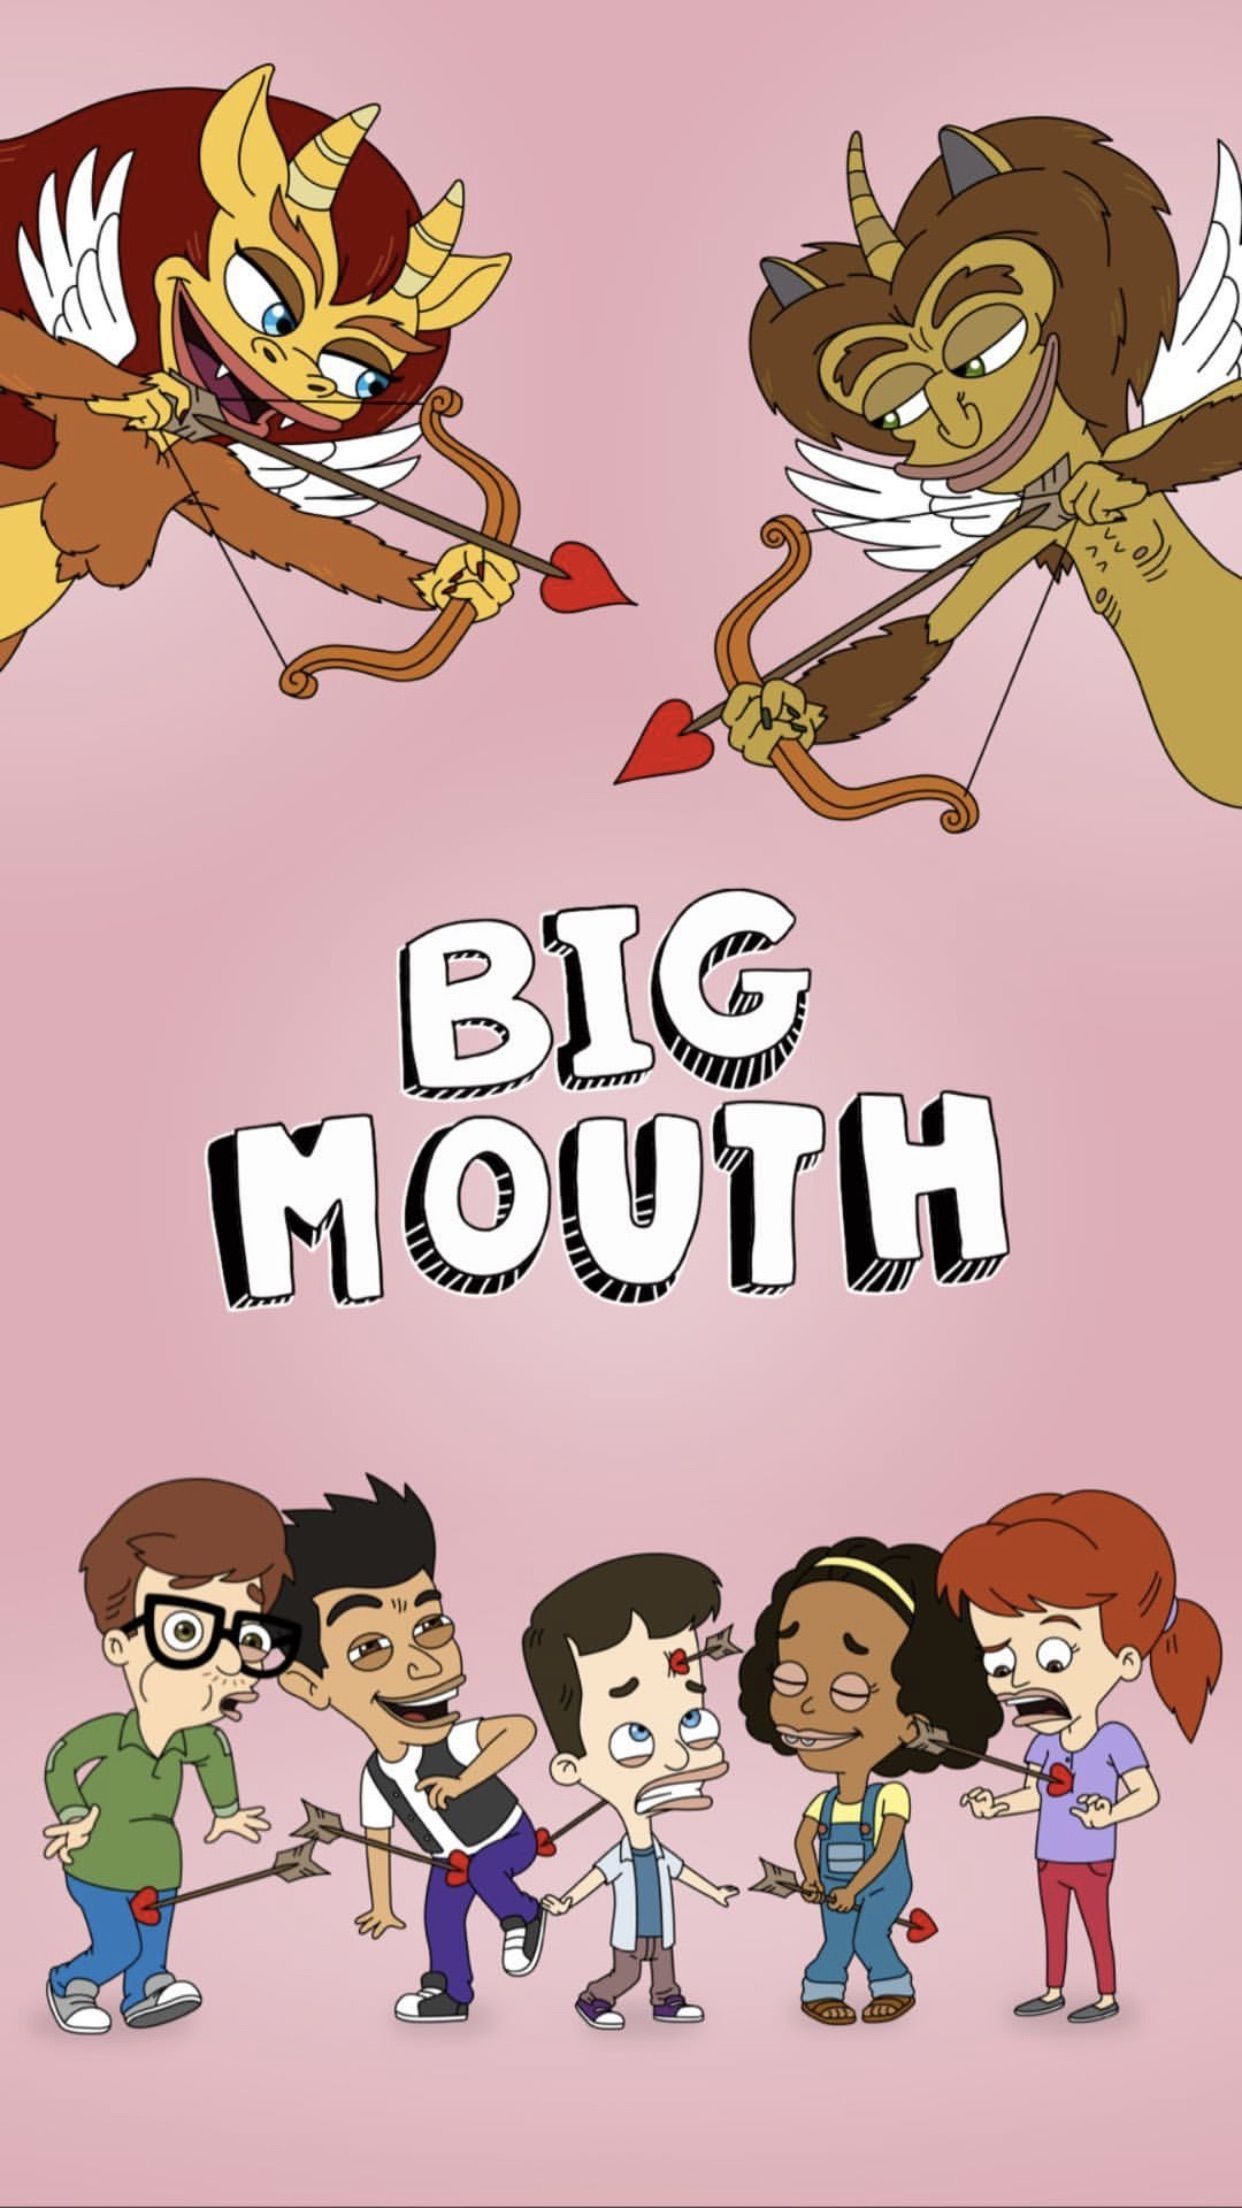 See More Big Mouth Iphone Wallpapers Hd Iphone Wallpaper Wallpaper Aesthetic In 2021 Big Mouth Mouth Funny Phone Wallpaper